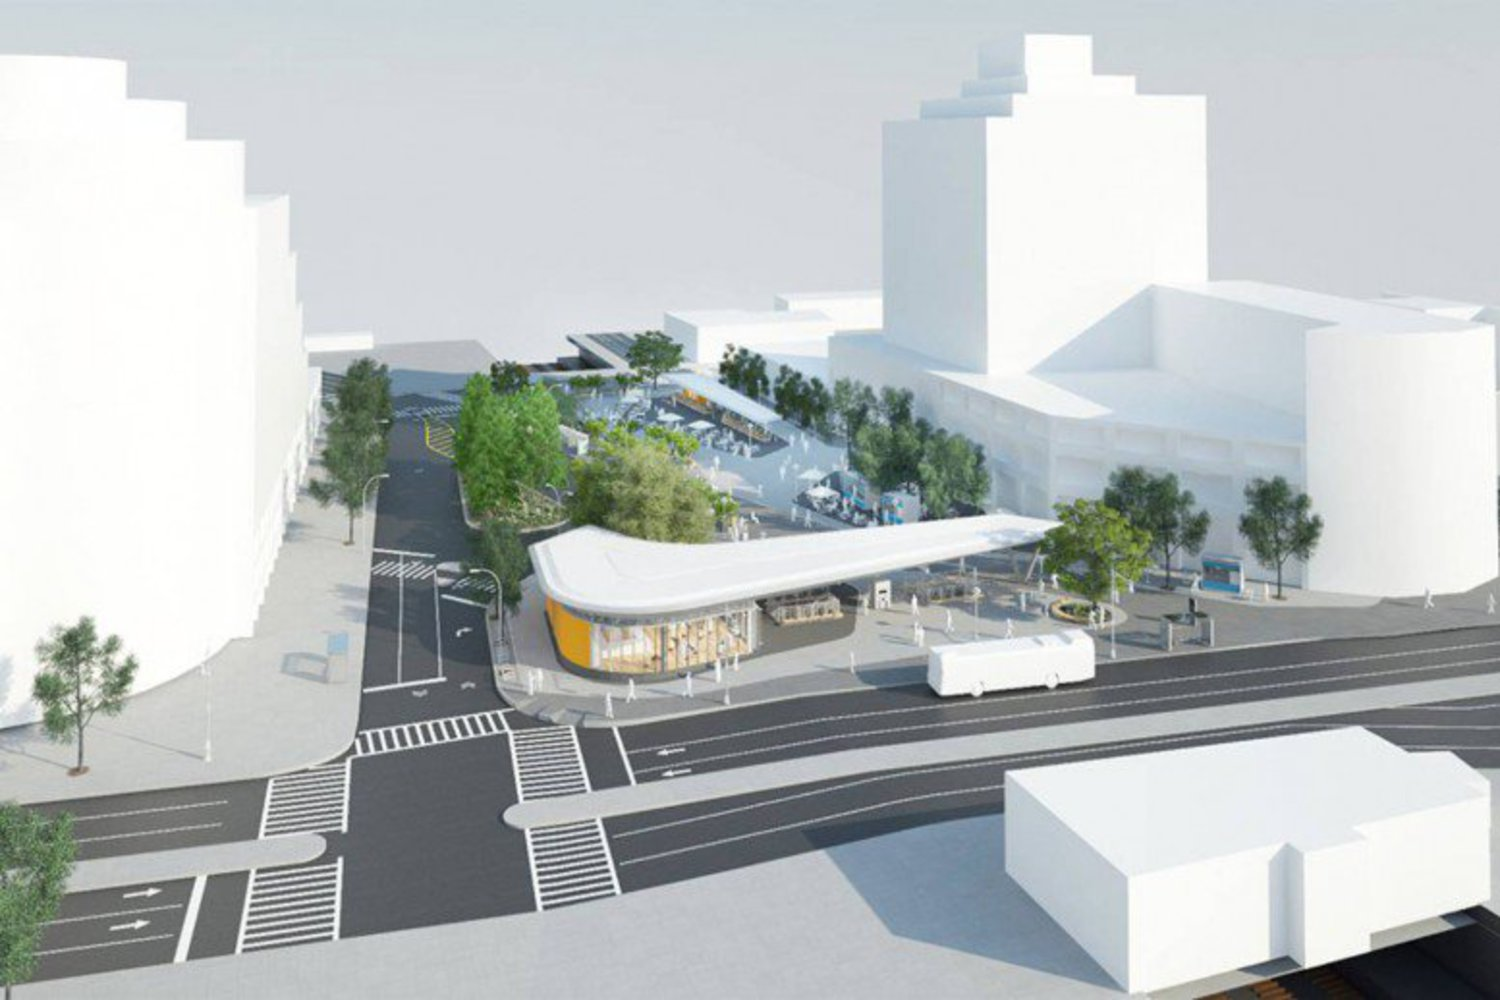 Fordham Plaza, rendering by Grimshaw Architects